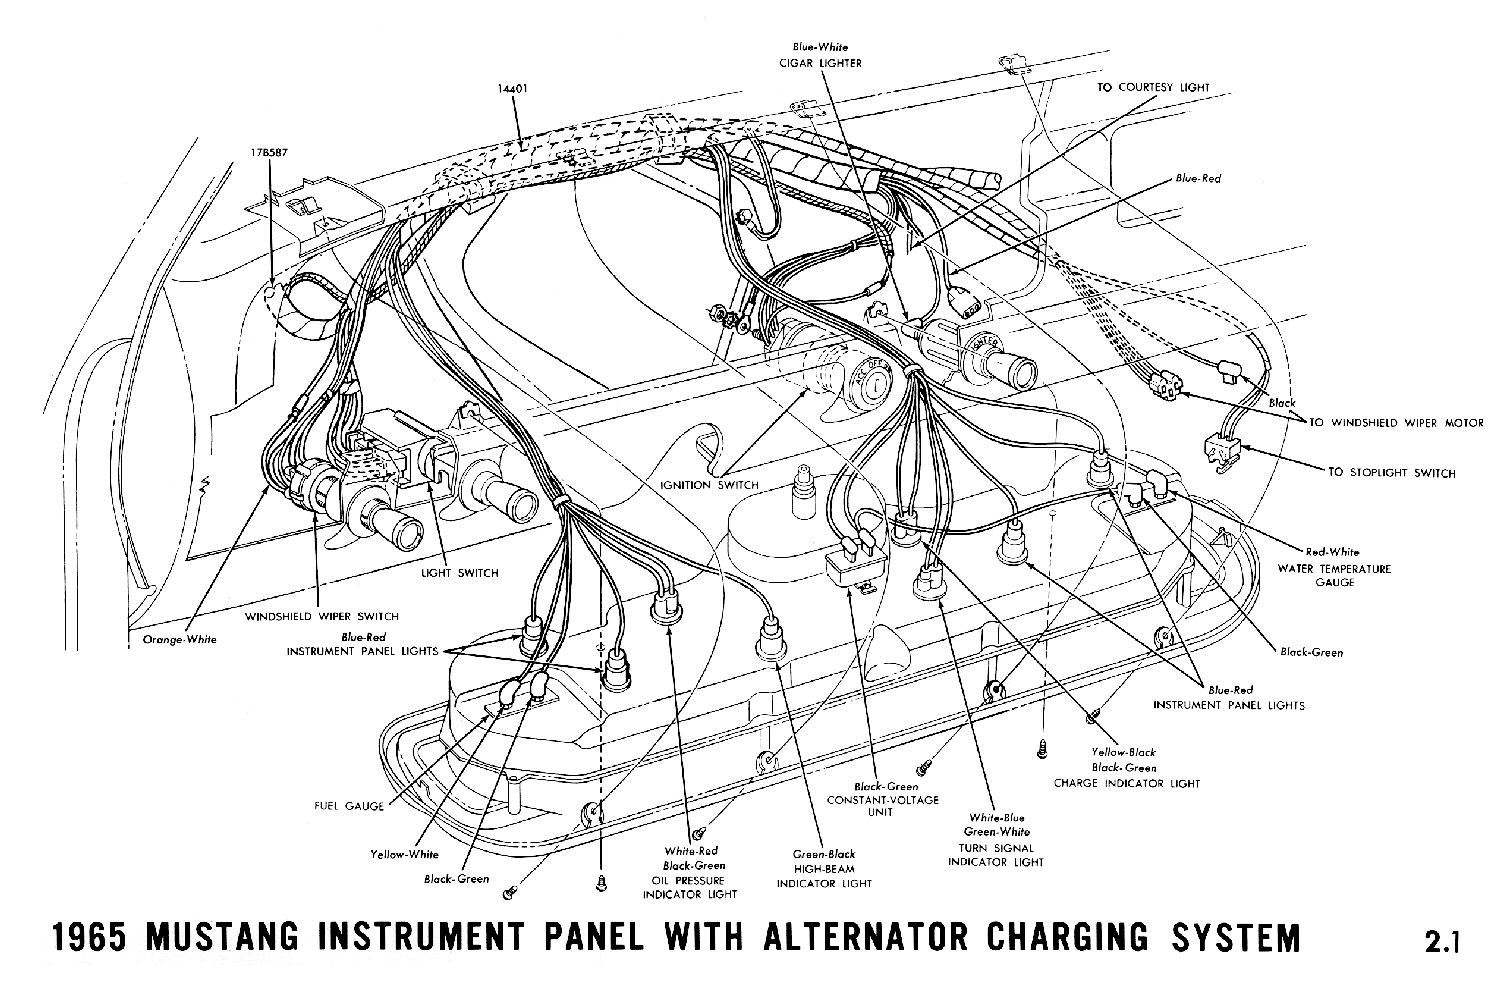 1965 Ford Mustang Wiring Harness Diagram Schematics Chevrolet Nova Diagrams Average Joe Restoration 1972